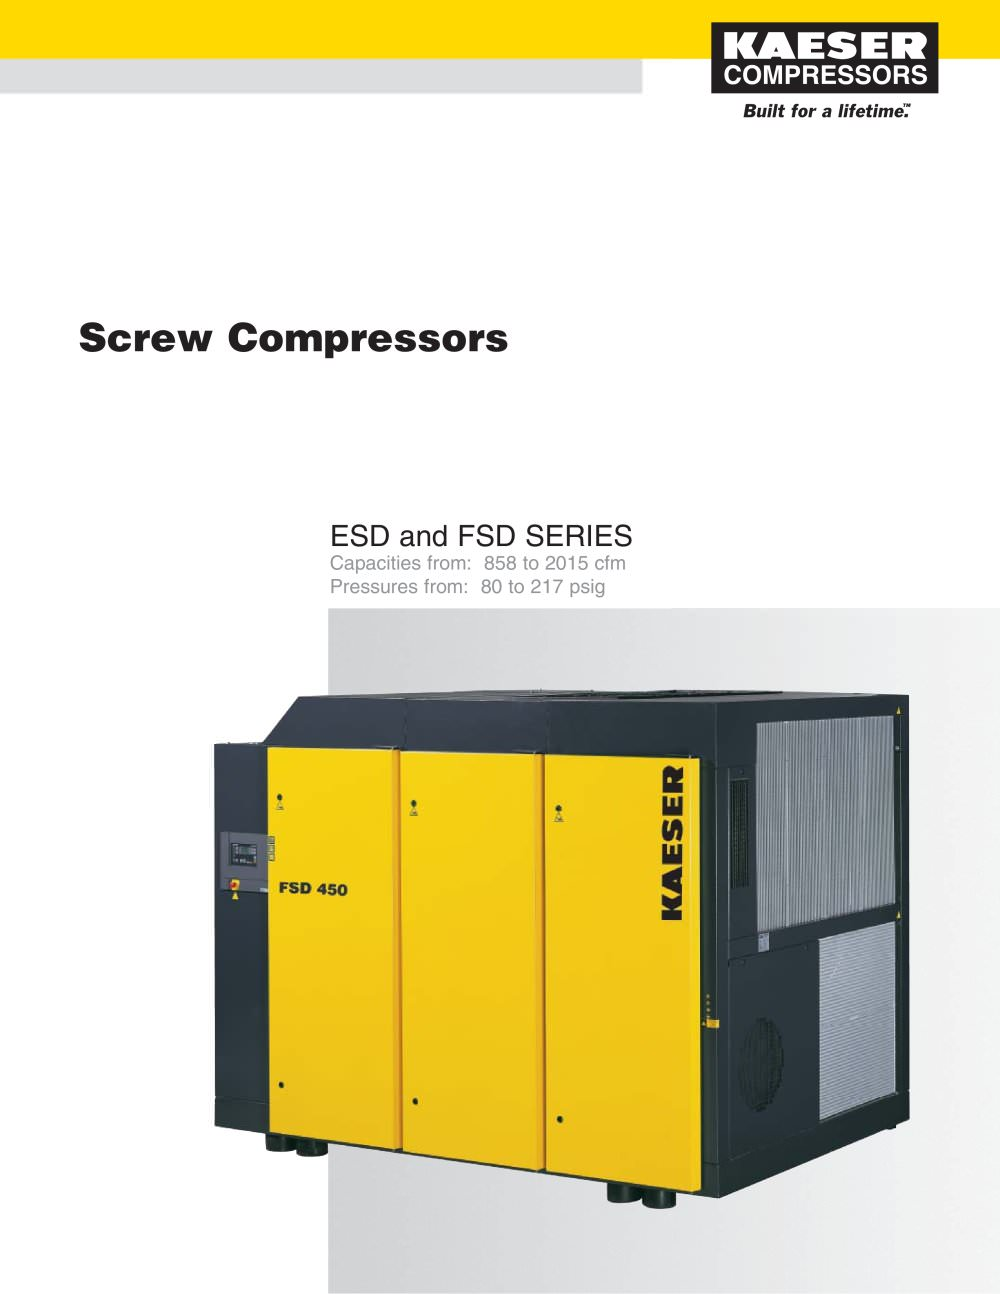 ESD and FSD Compressors - 1 / 6 Pages